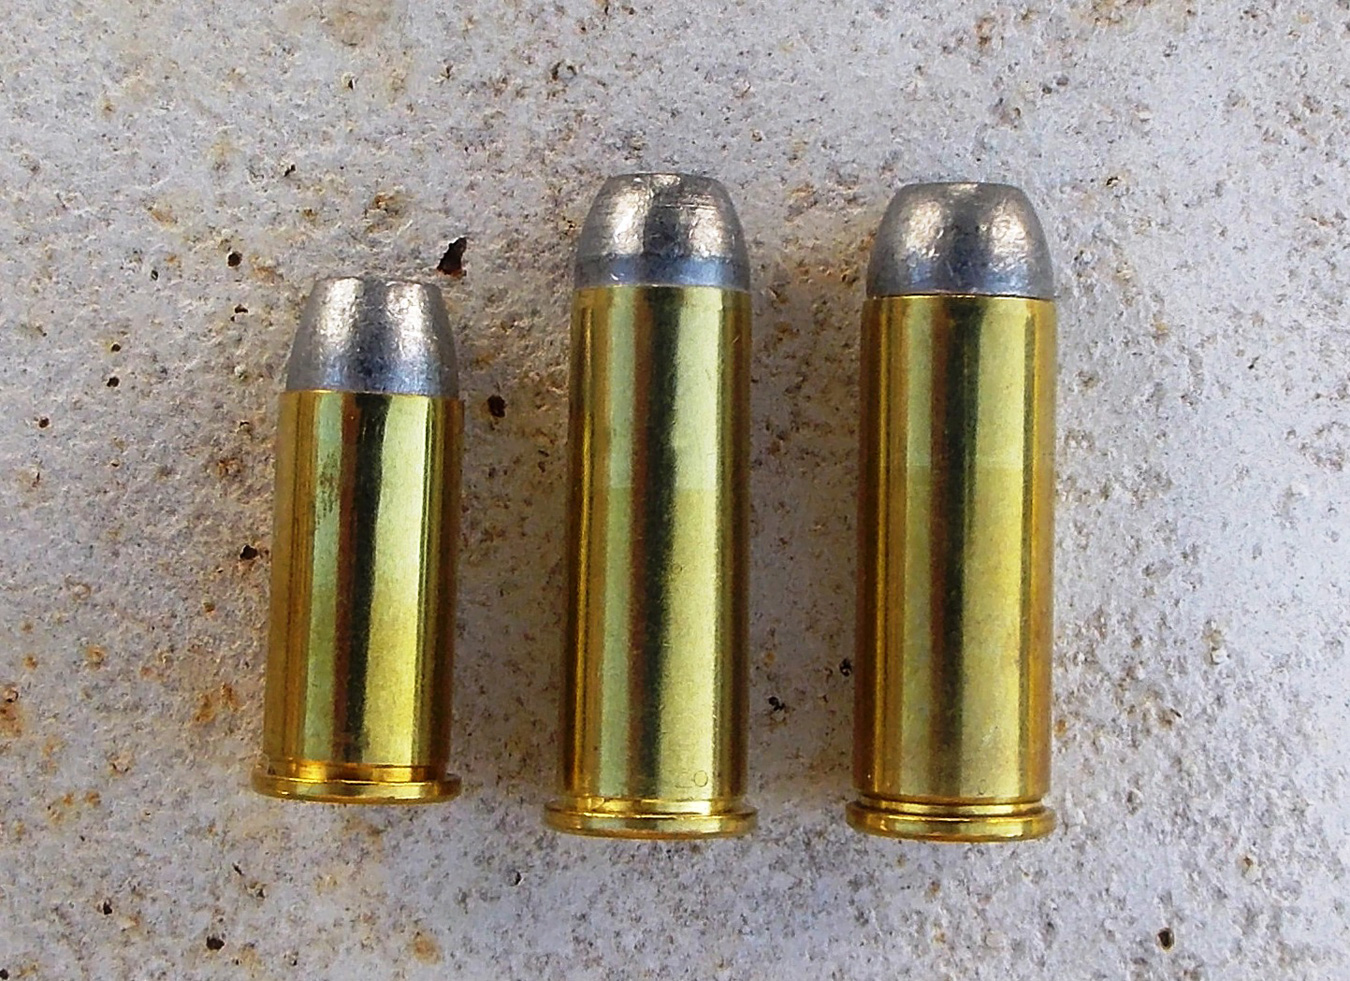 3 pistol caliber carbine cartridges